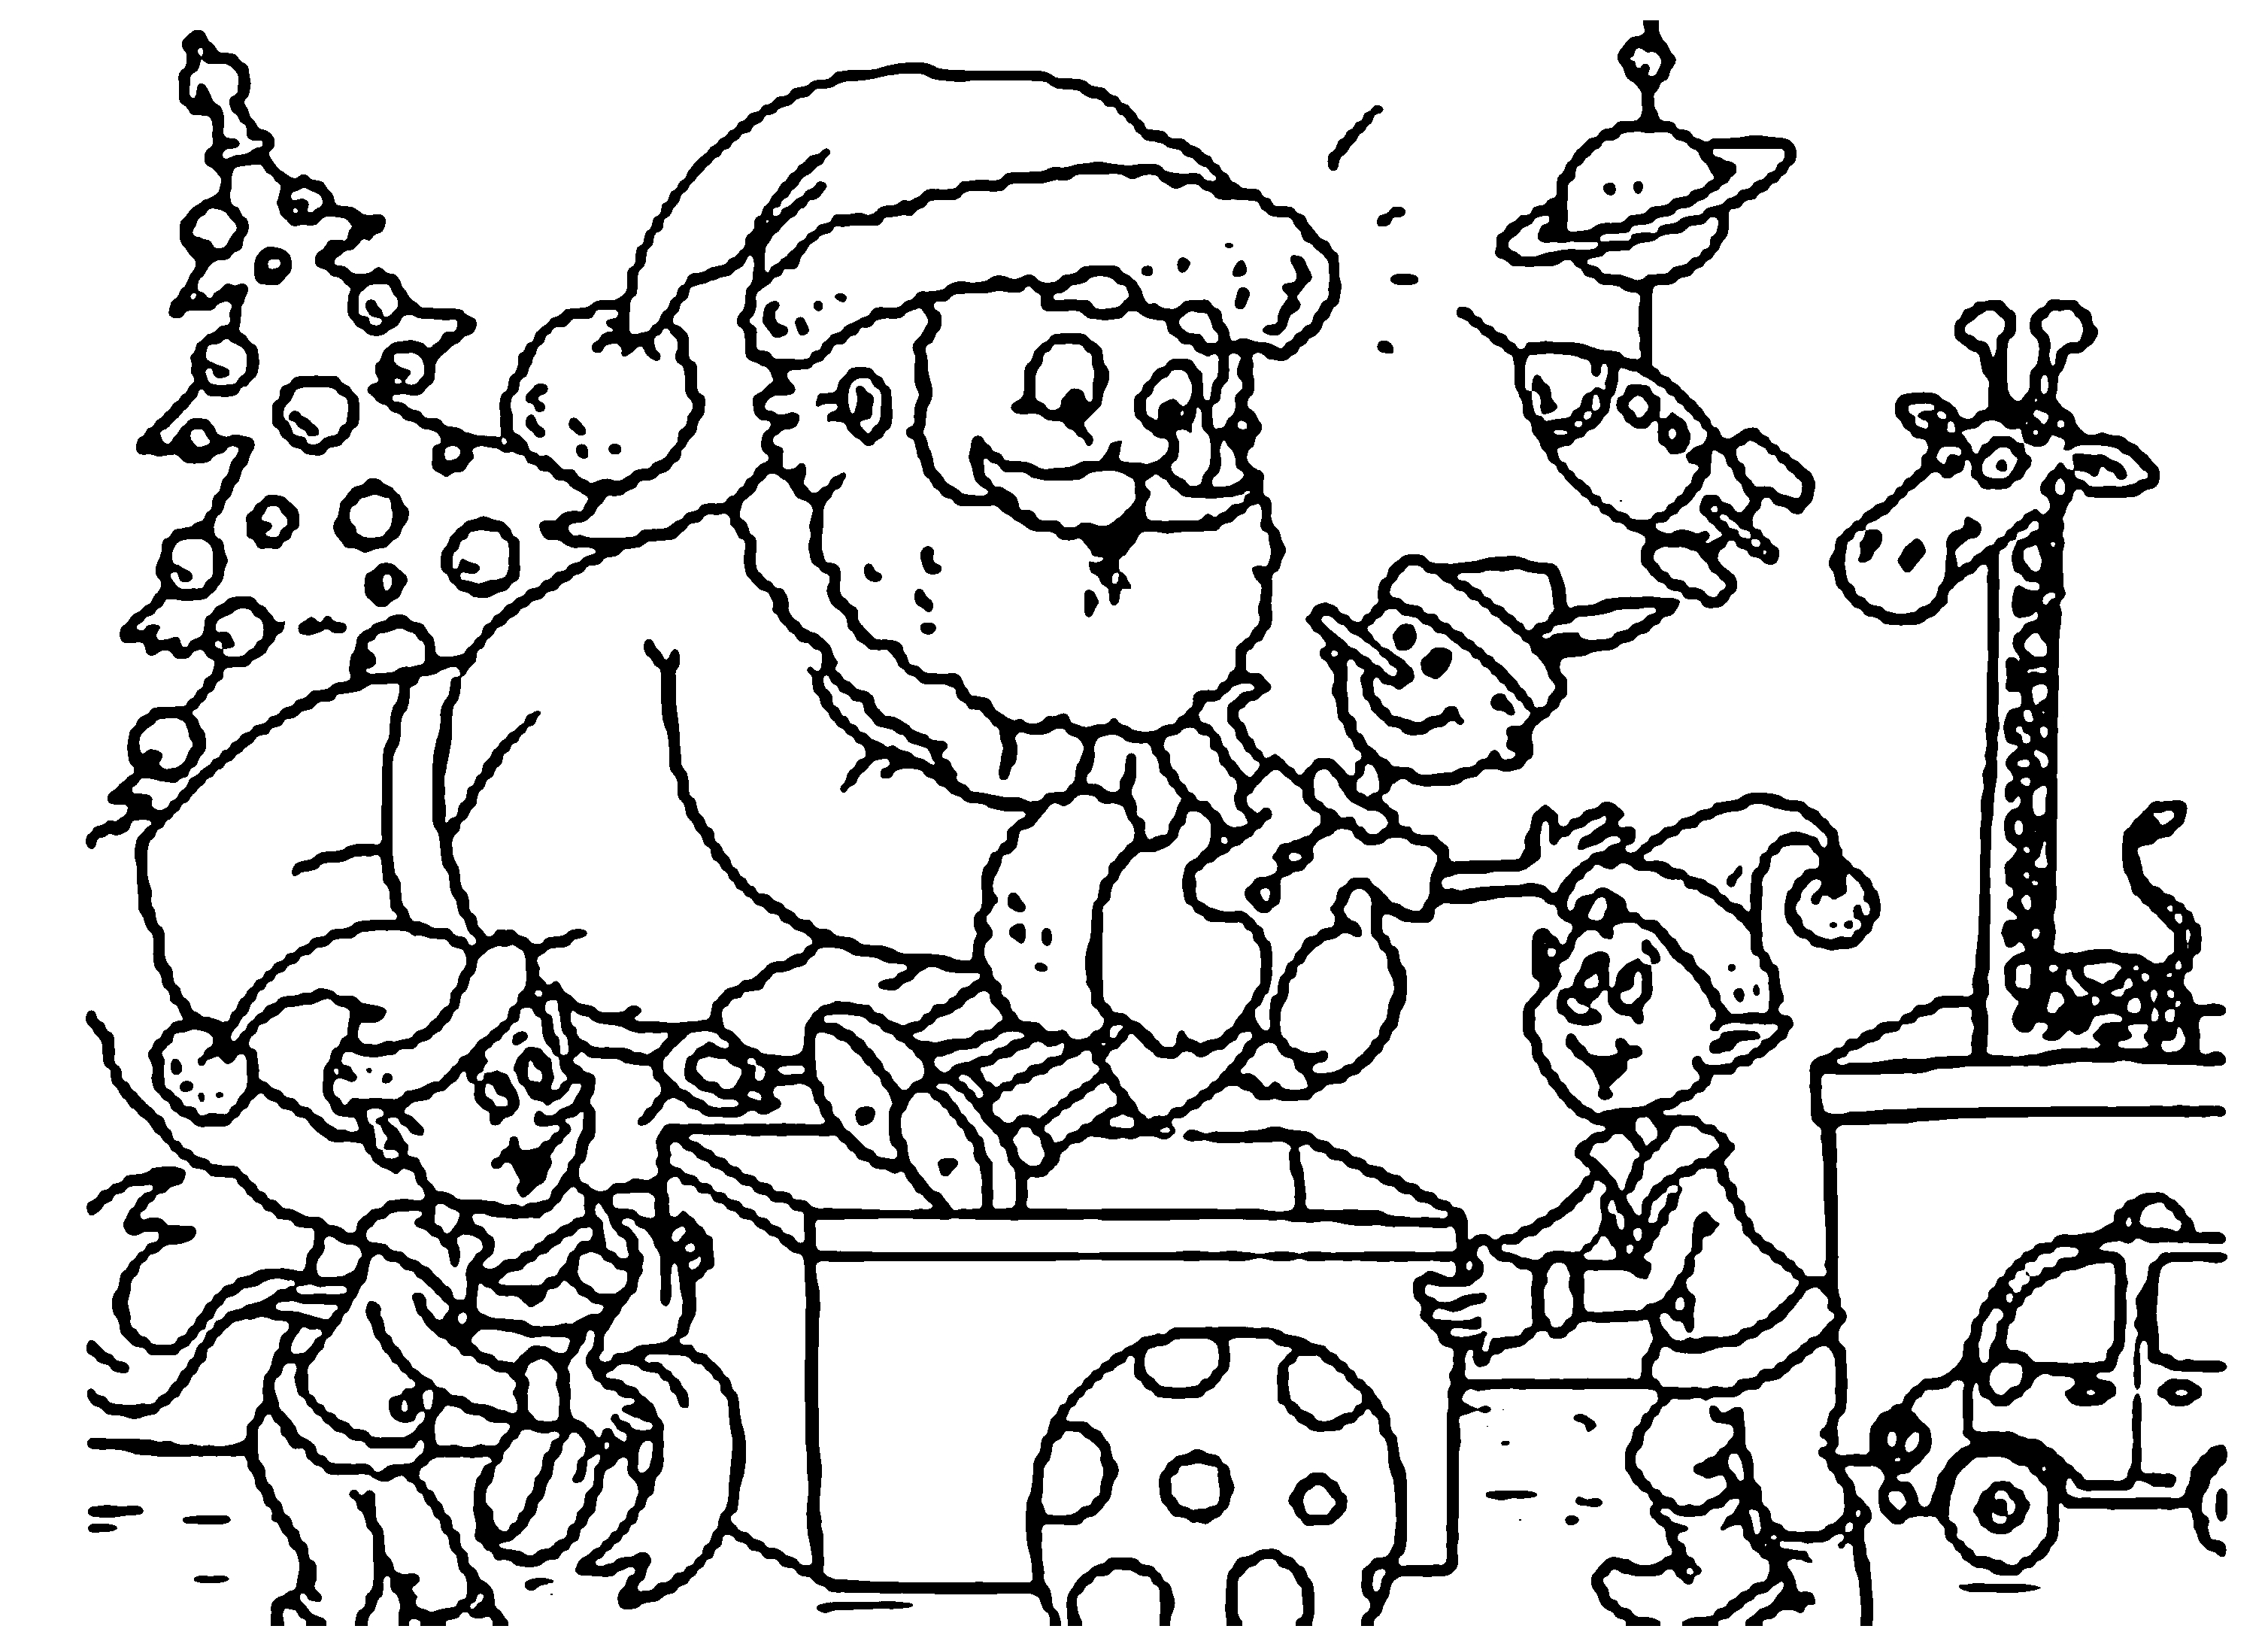 mistletoe coloring pages - christmas coloring printable pages